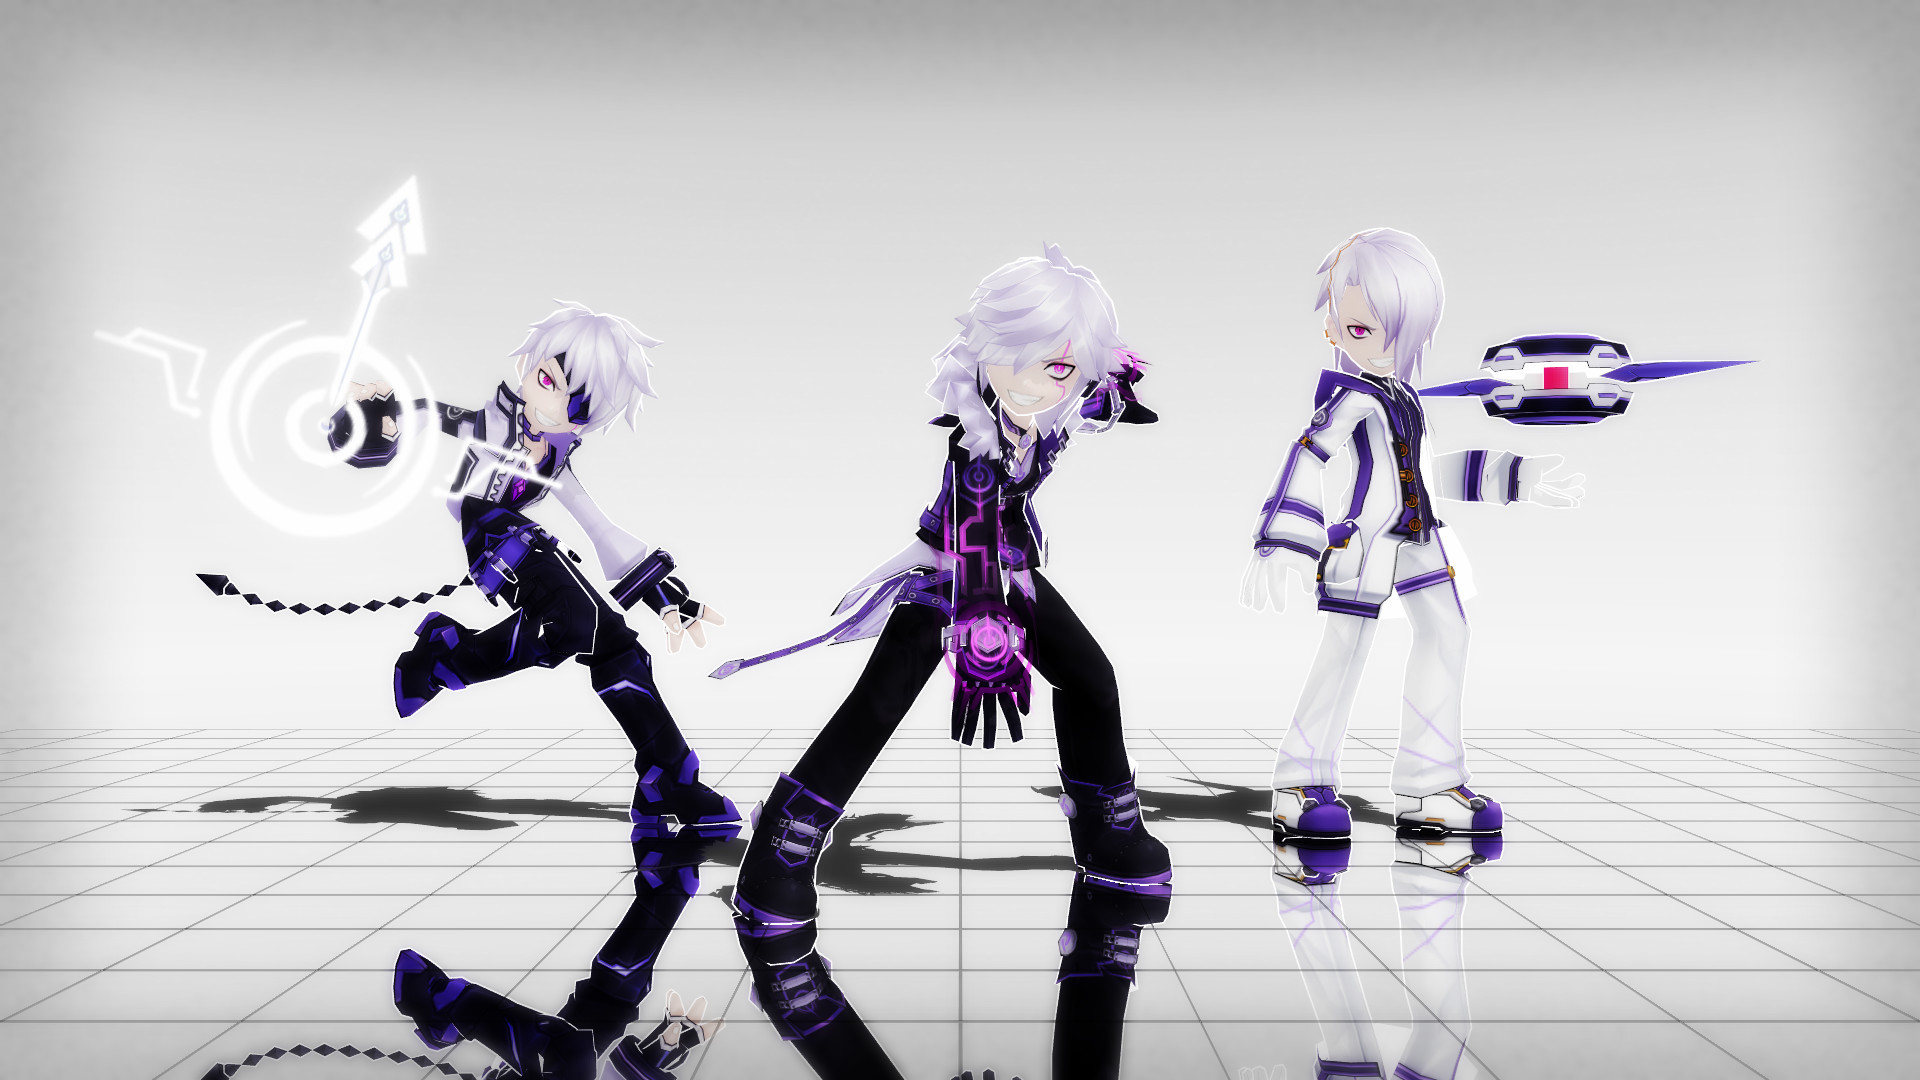 1920x1080 ... Elsword: Add First Job Wallpaper by DiabolicTurkey